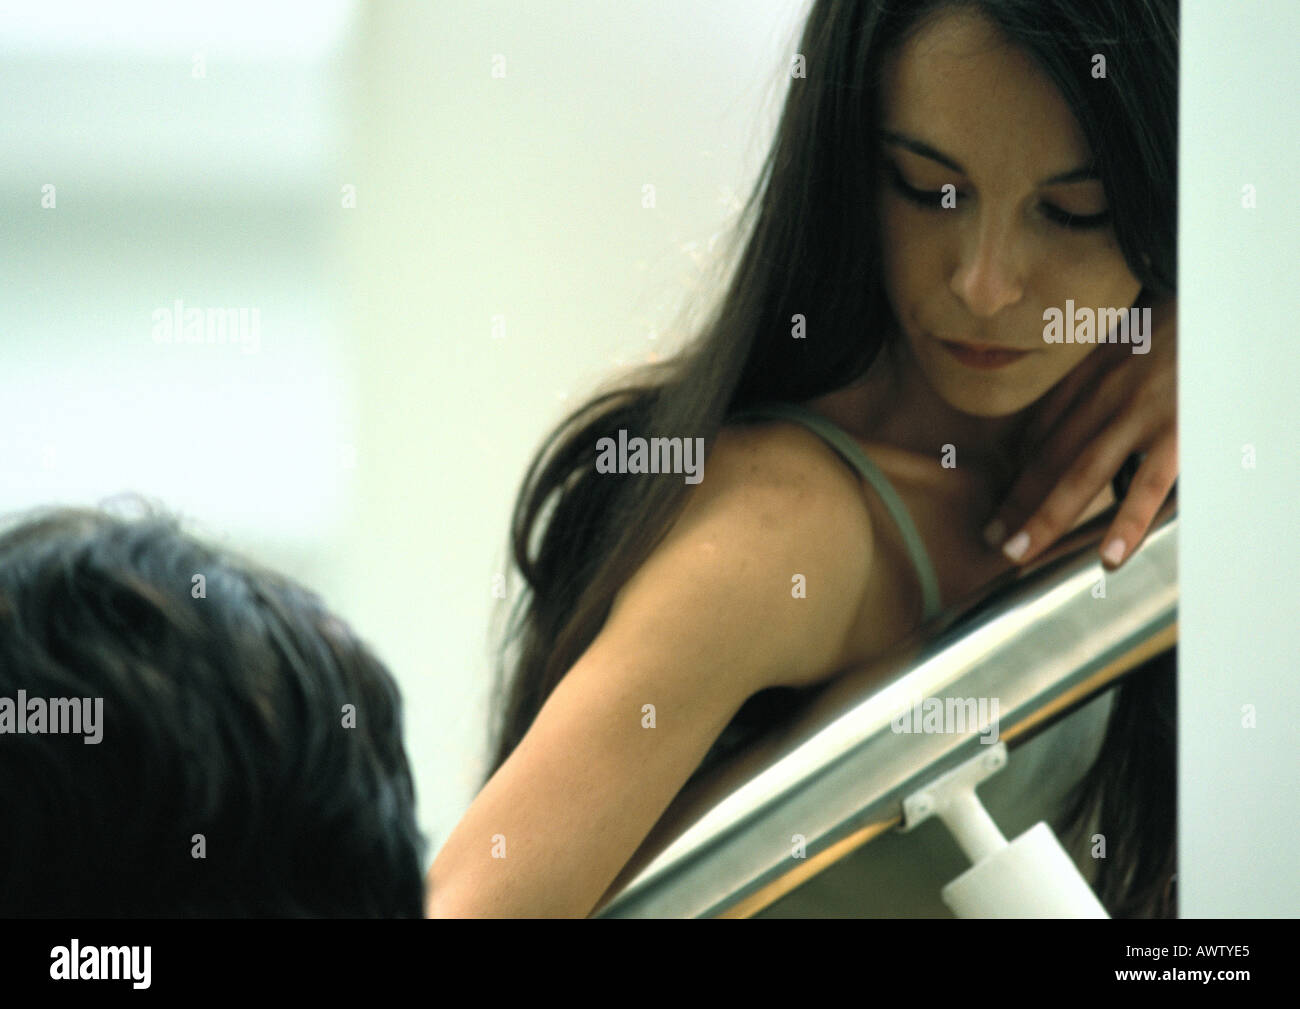 Woman resting head on arm rail, looking at someone - Stock Image